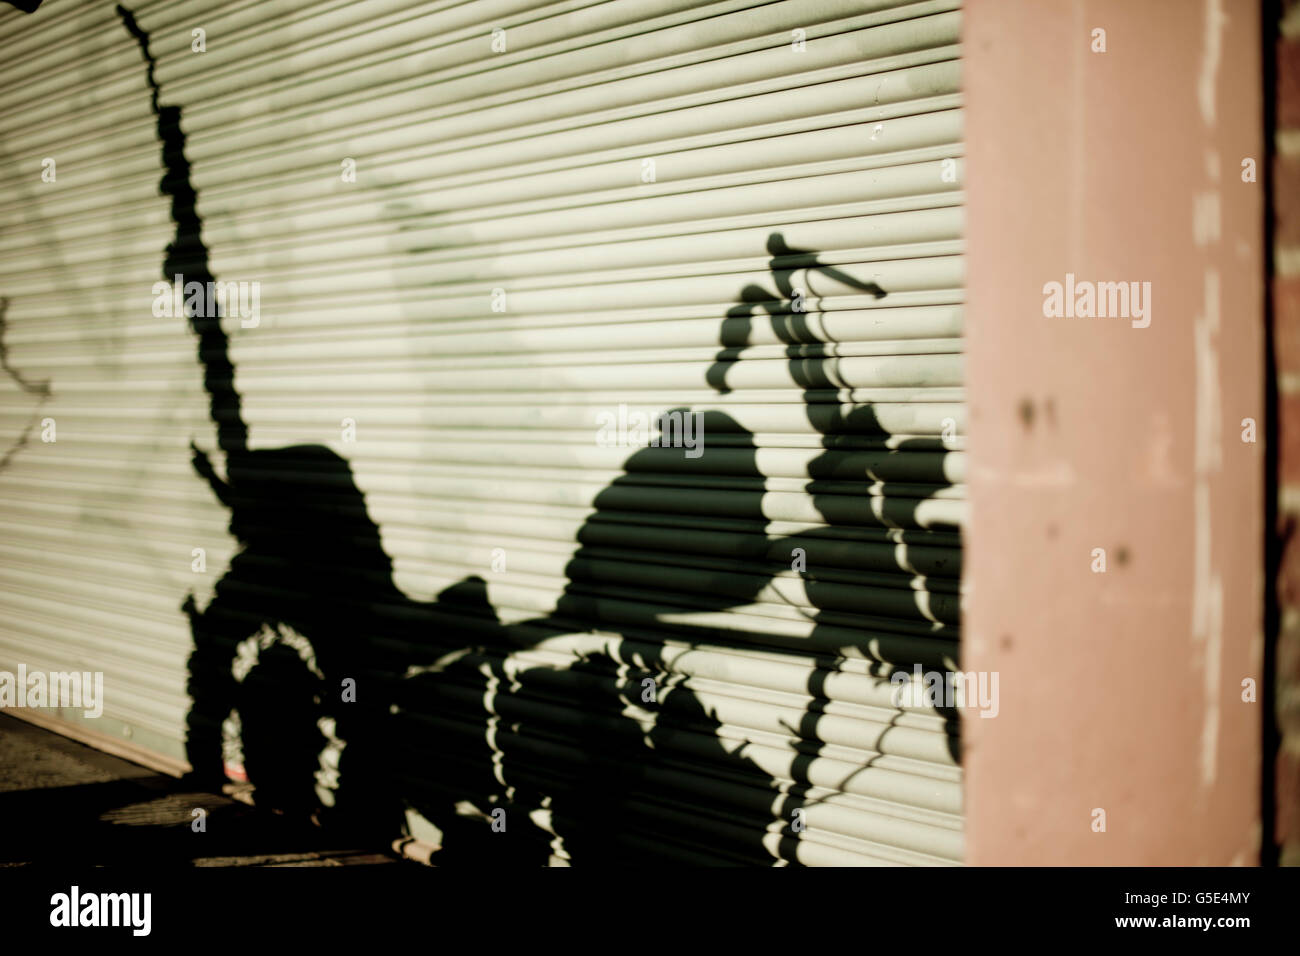 Vintage chopper motorcycle shadow - Stock Image